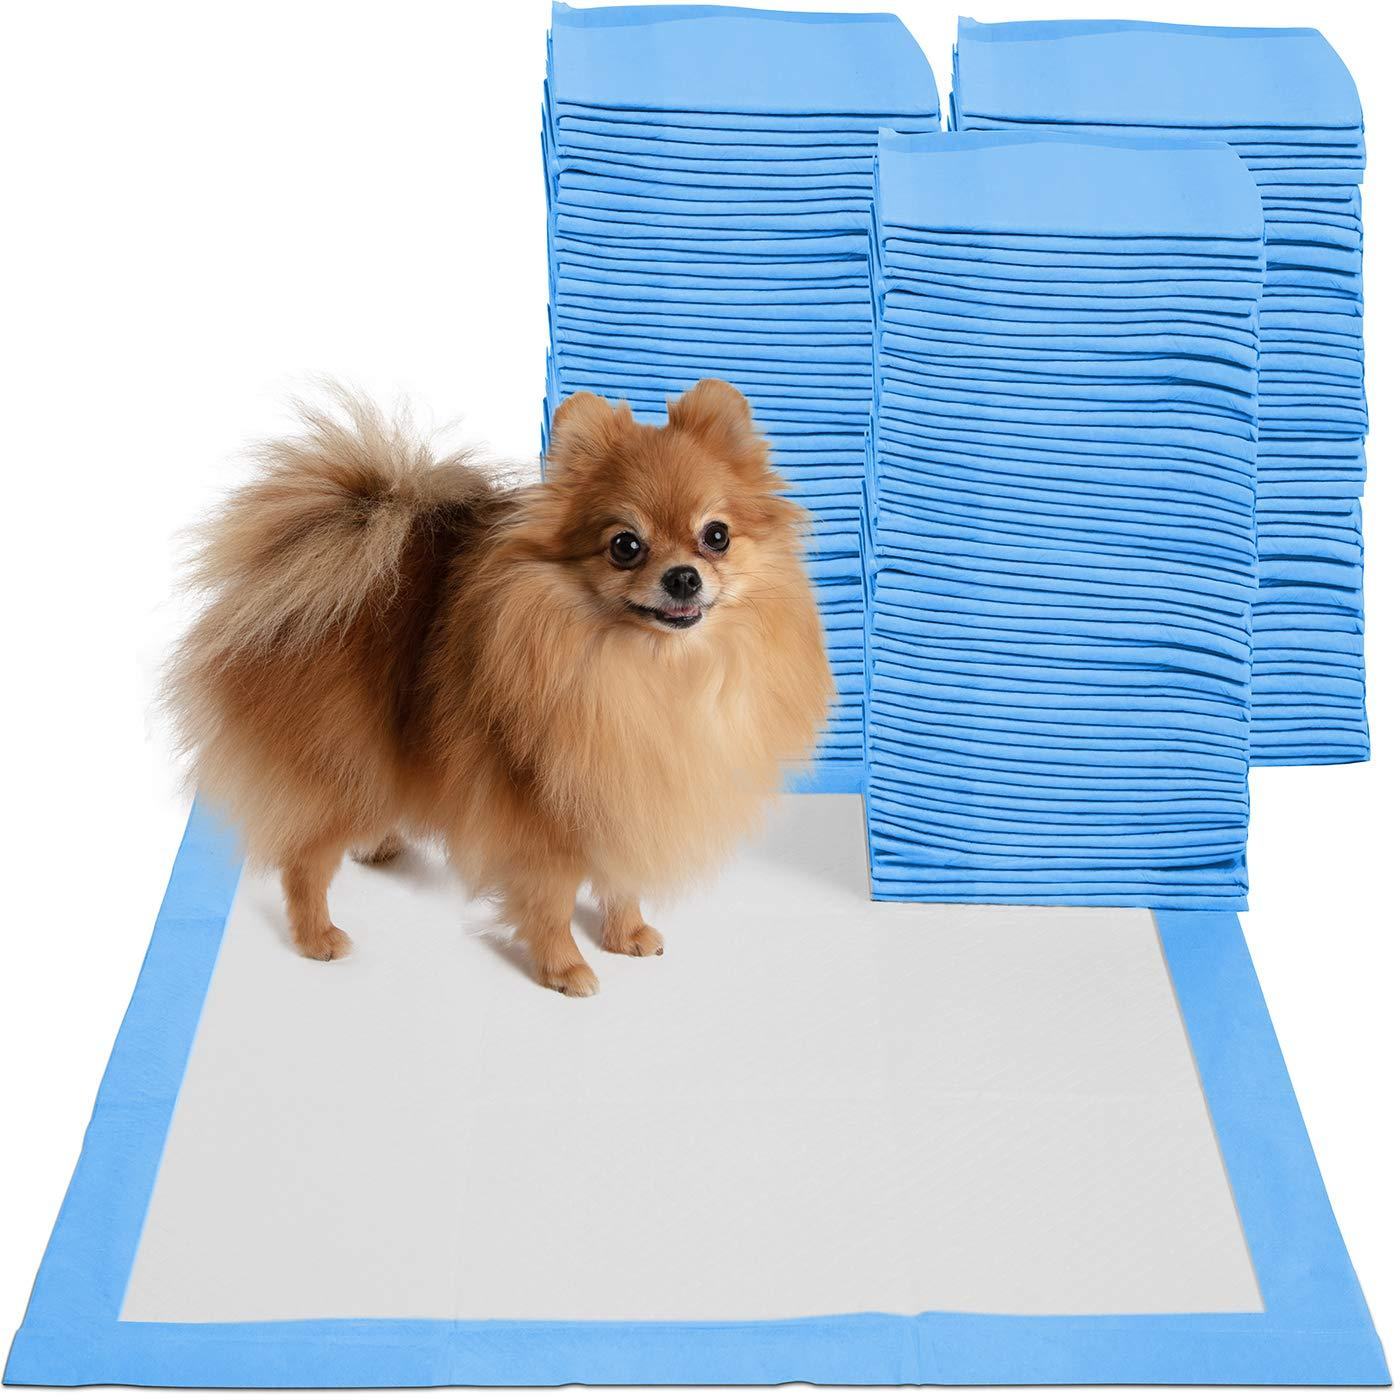 BIG SALE: 25 PCS MEDIUM Pee Pads (60cmx45cm) for Puppies or Senior Dogs